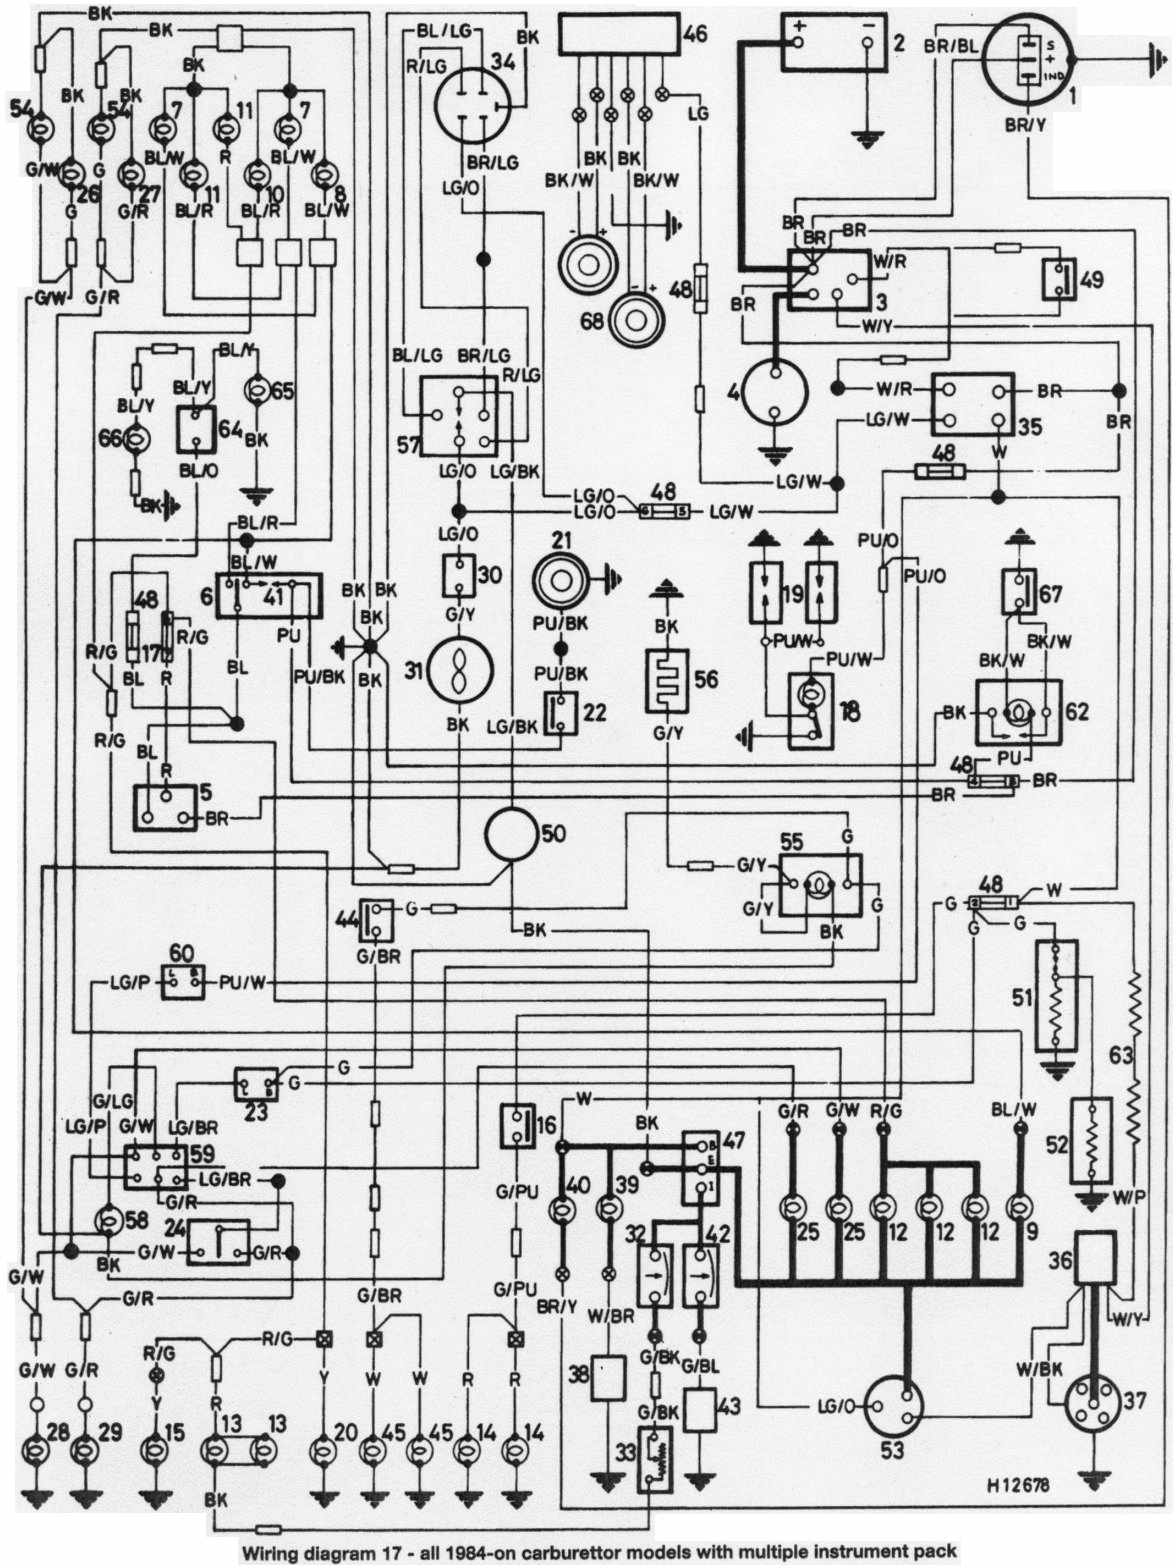 wiring diagram of 1984 onwards all mini series with multiple instrument pack?t\=1508499130 rover 25 wiring diagram wiring diagram symbols chart \u2022 free wiring rover 25 wiring diagram pdf at readyjetset.co